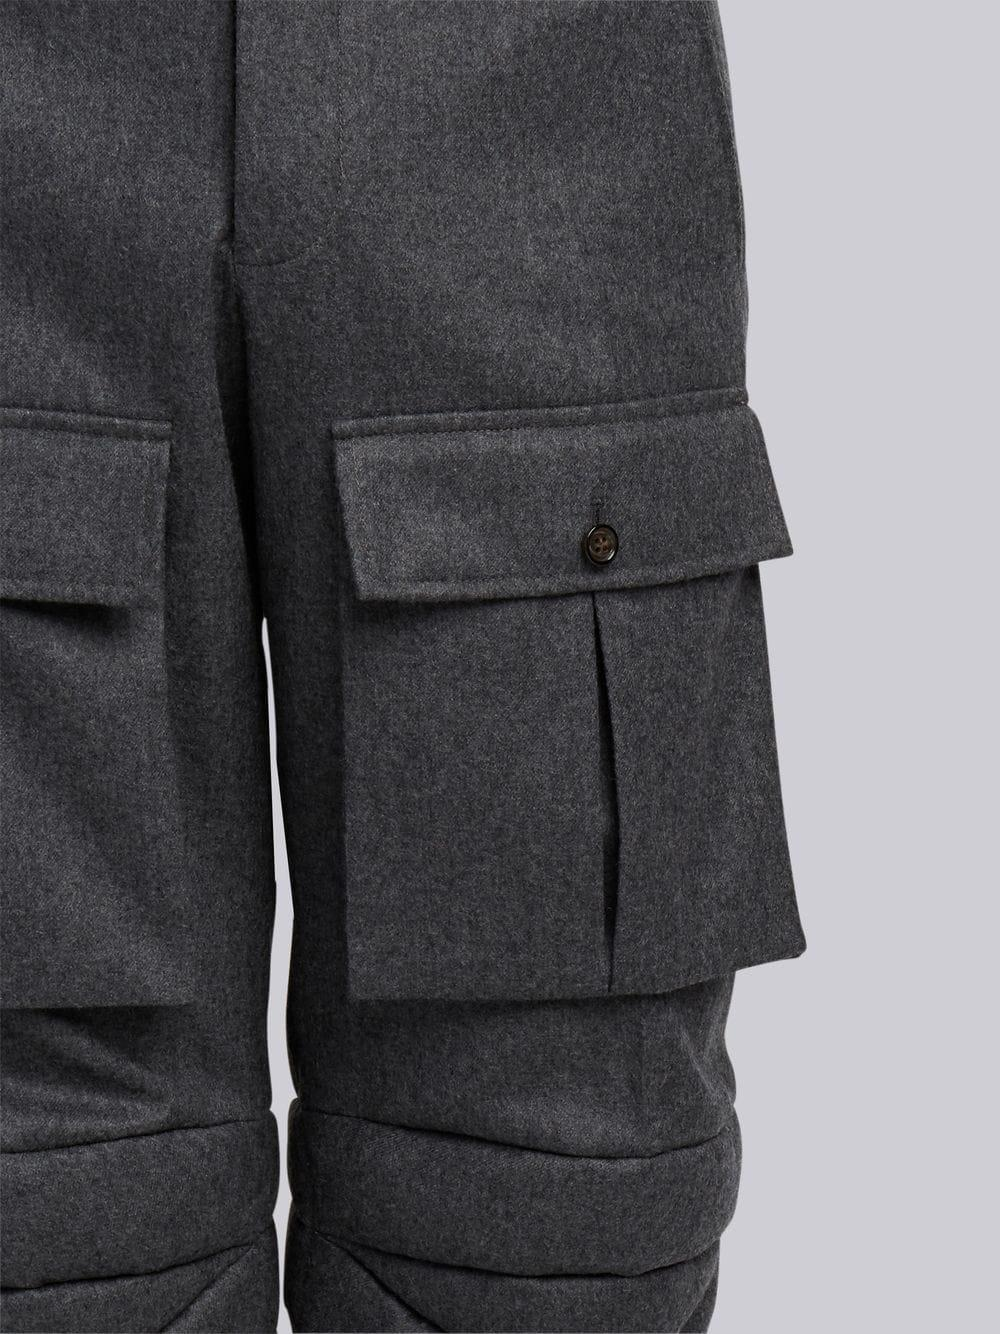 THOM BROWNE THOM BROWNE ARTICULATED SOLID WOOL FLANNEL TROUSER,MTC067A0089112559486